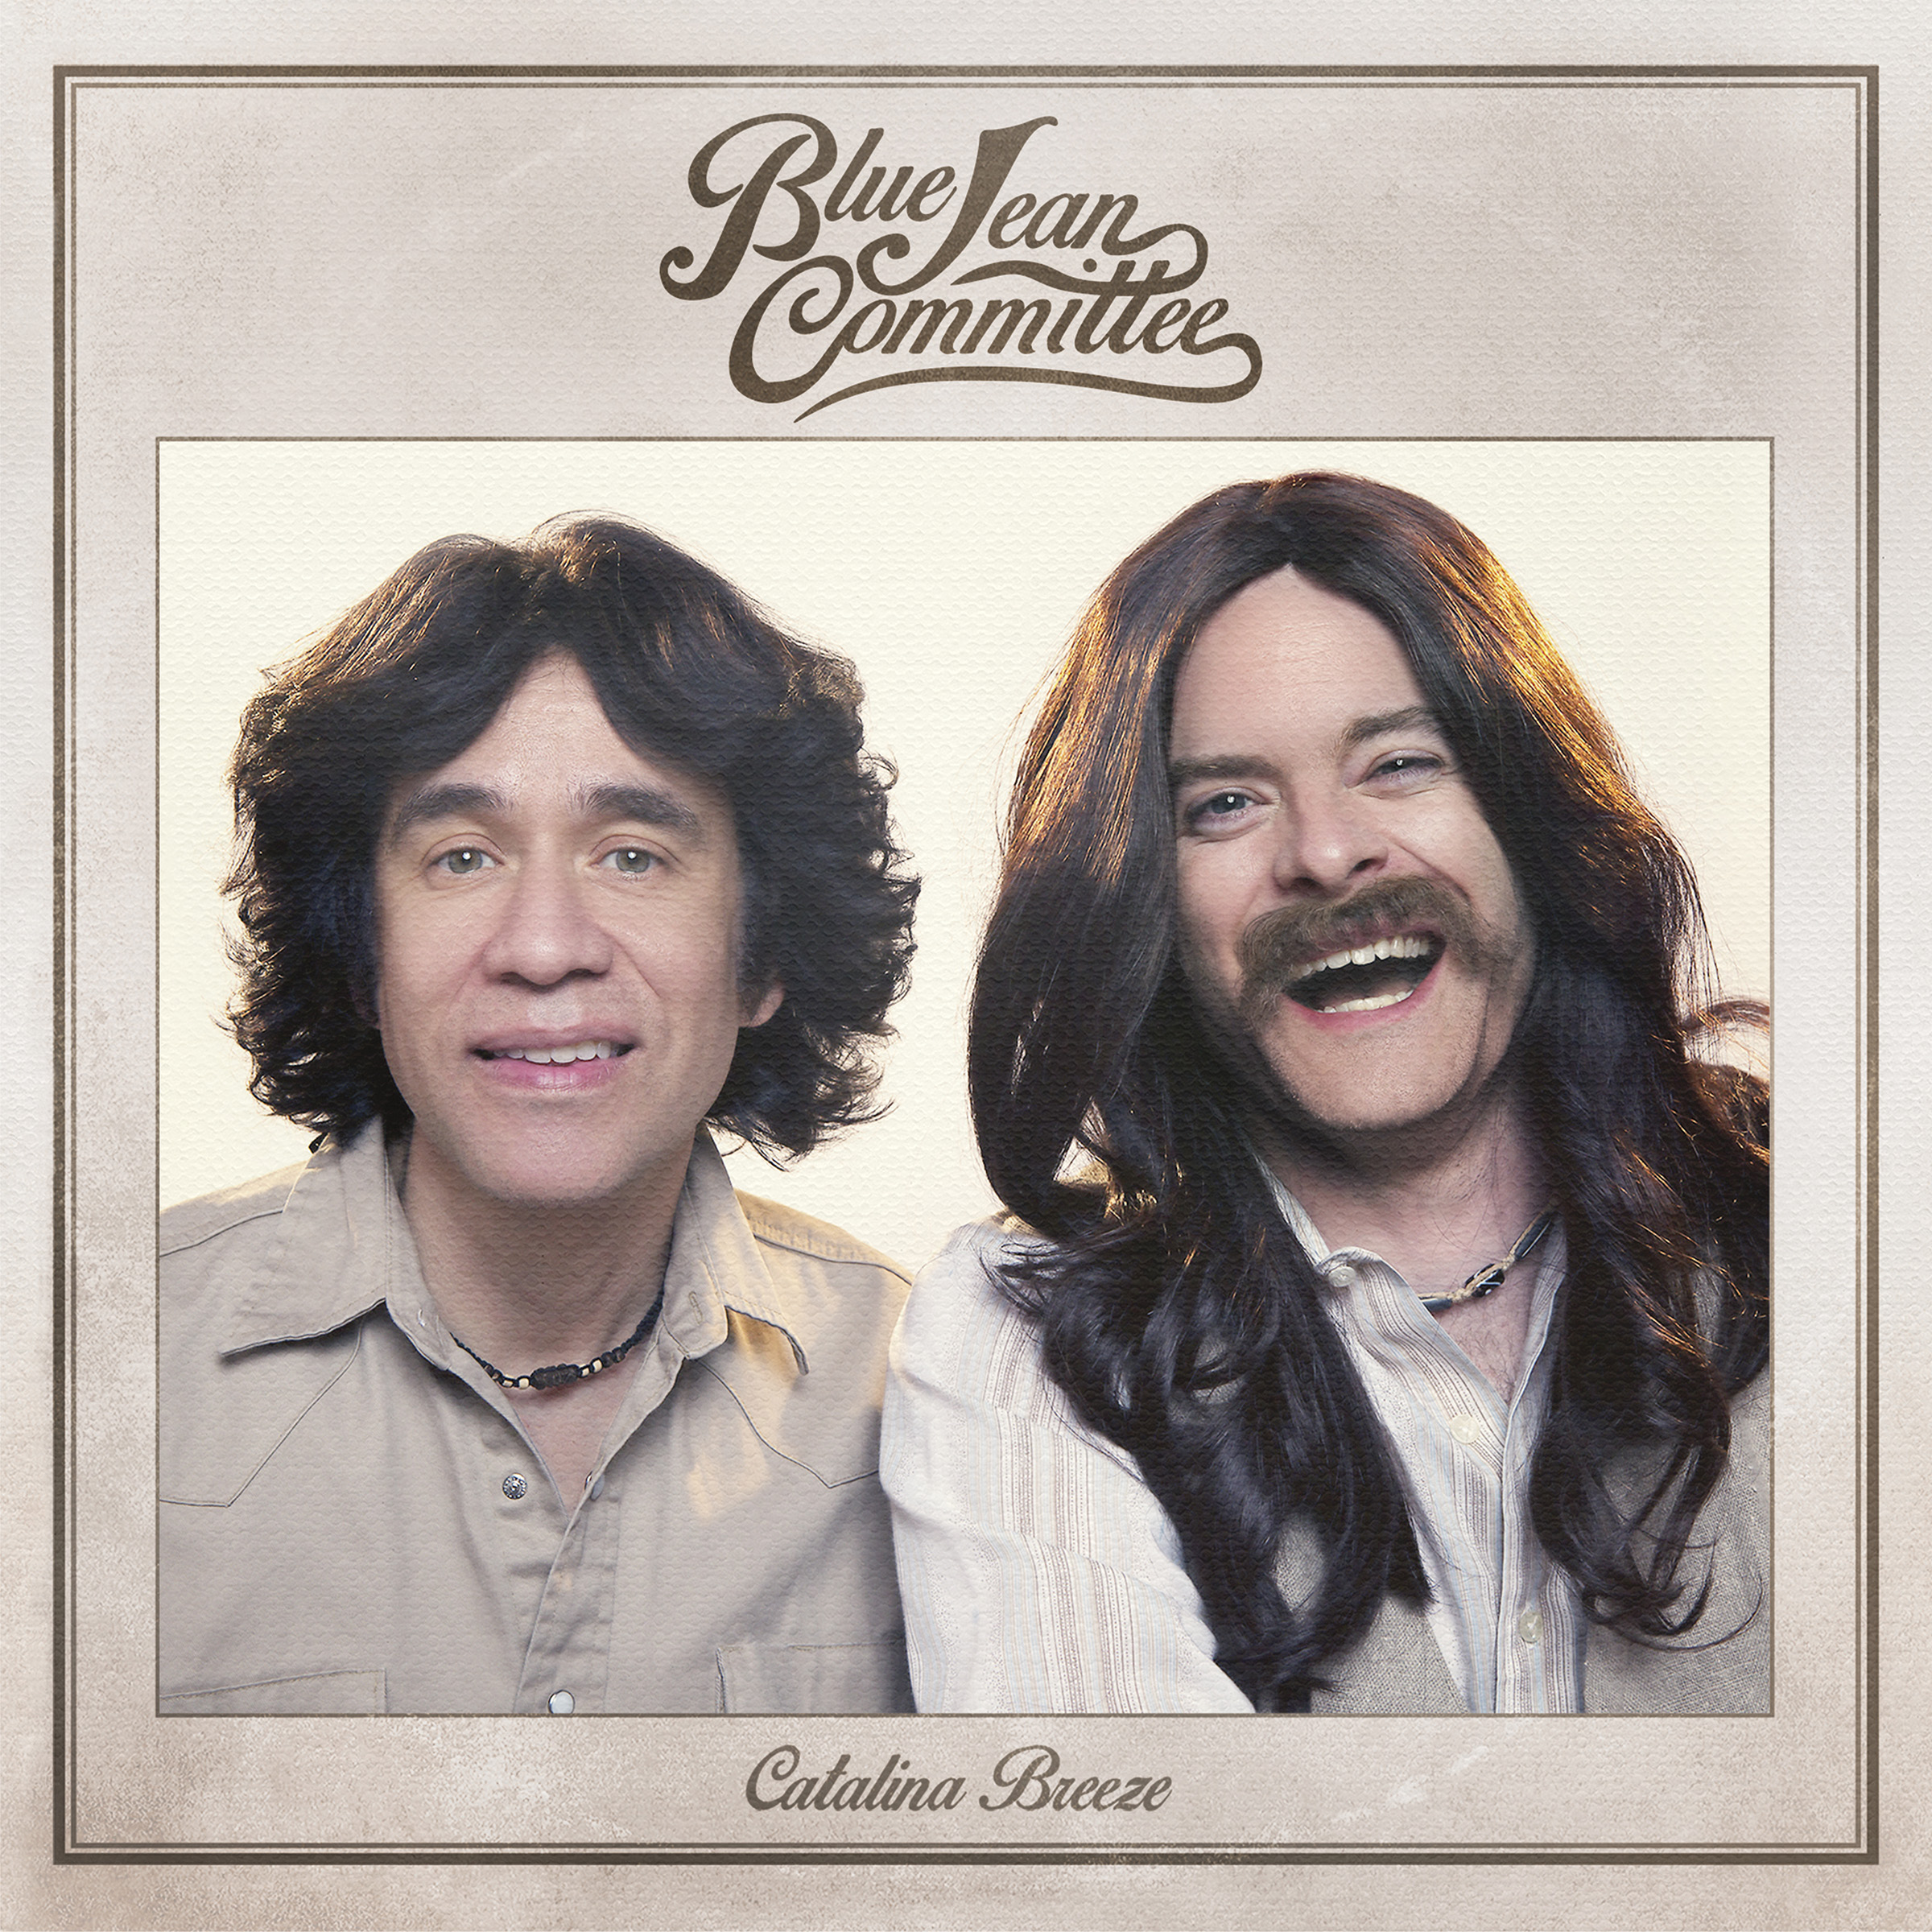 The Blue Jean Committee, 'Gentle and Soft'